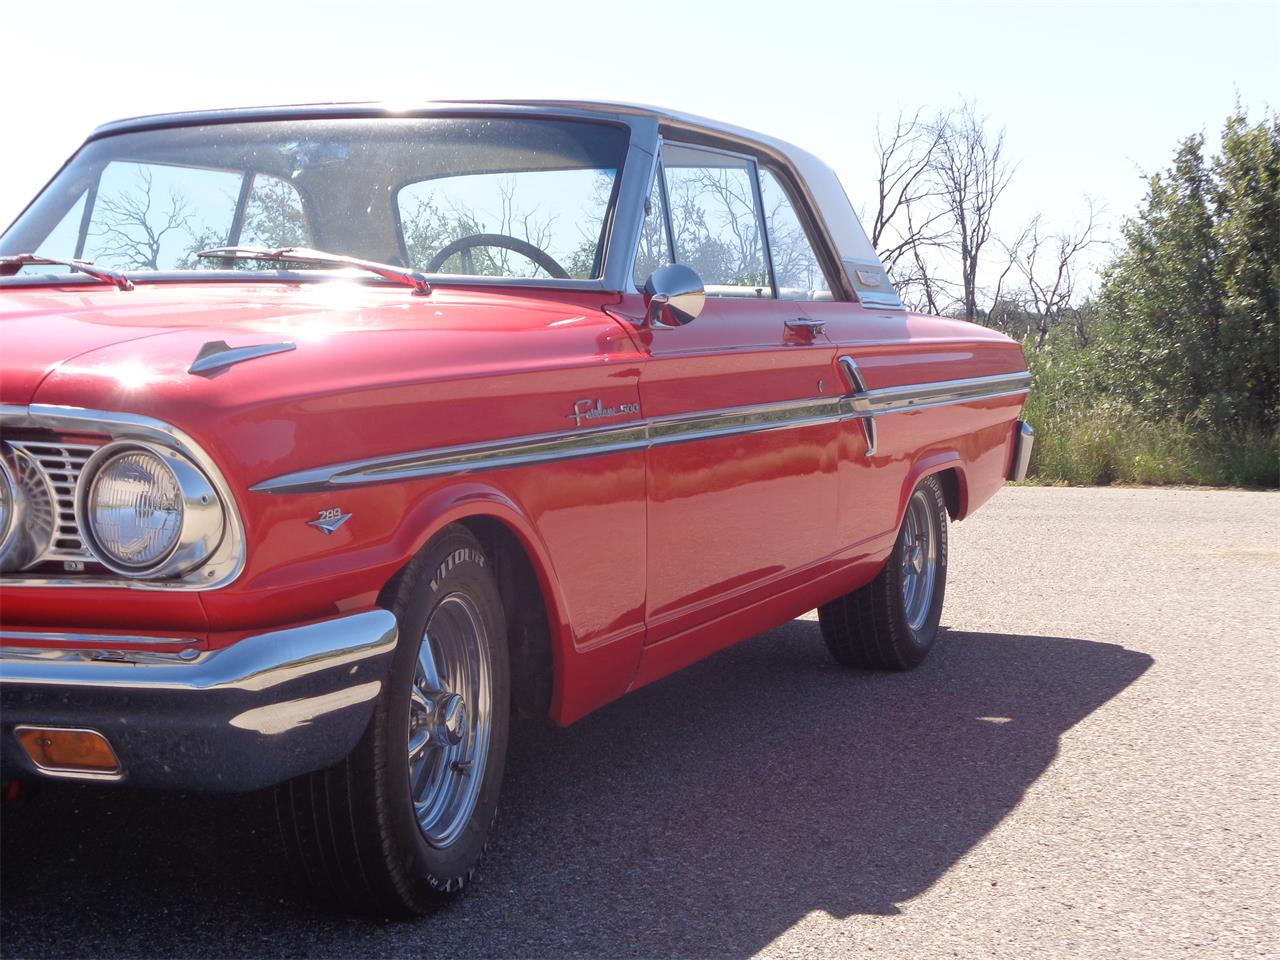 Large Picture of 1964 Ford Fairlane 500 located in Hereford Arizona - $16,000.00 - OWO7